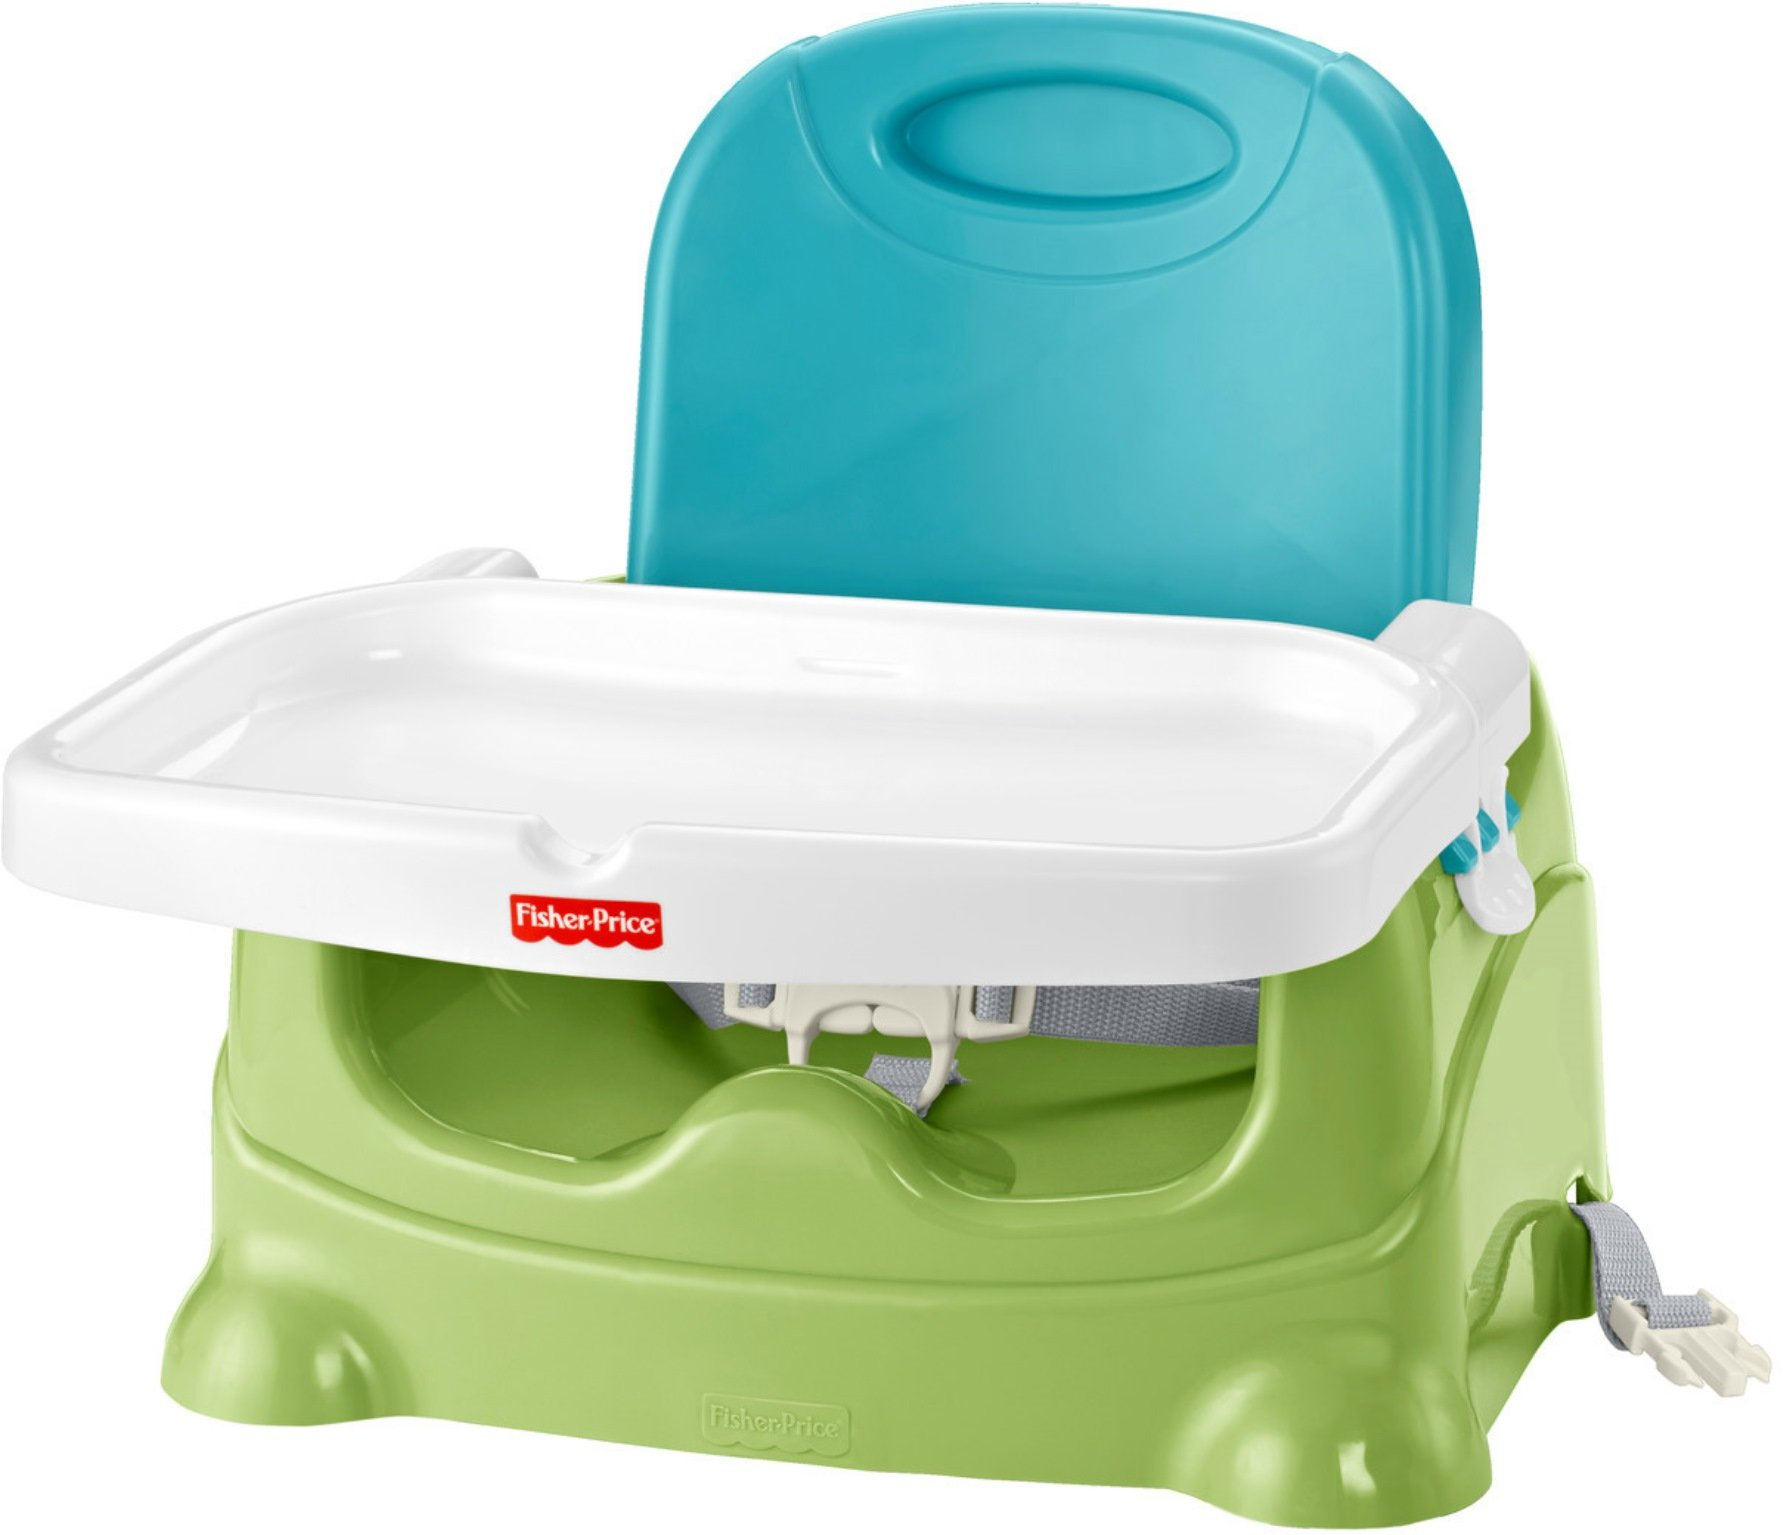 Fisher price booster chair - Fisher Price Healthy Care Booster Seat Green Blue